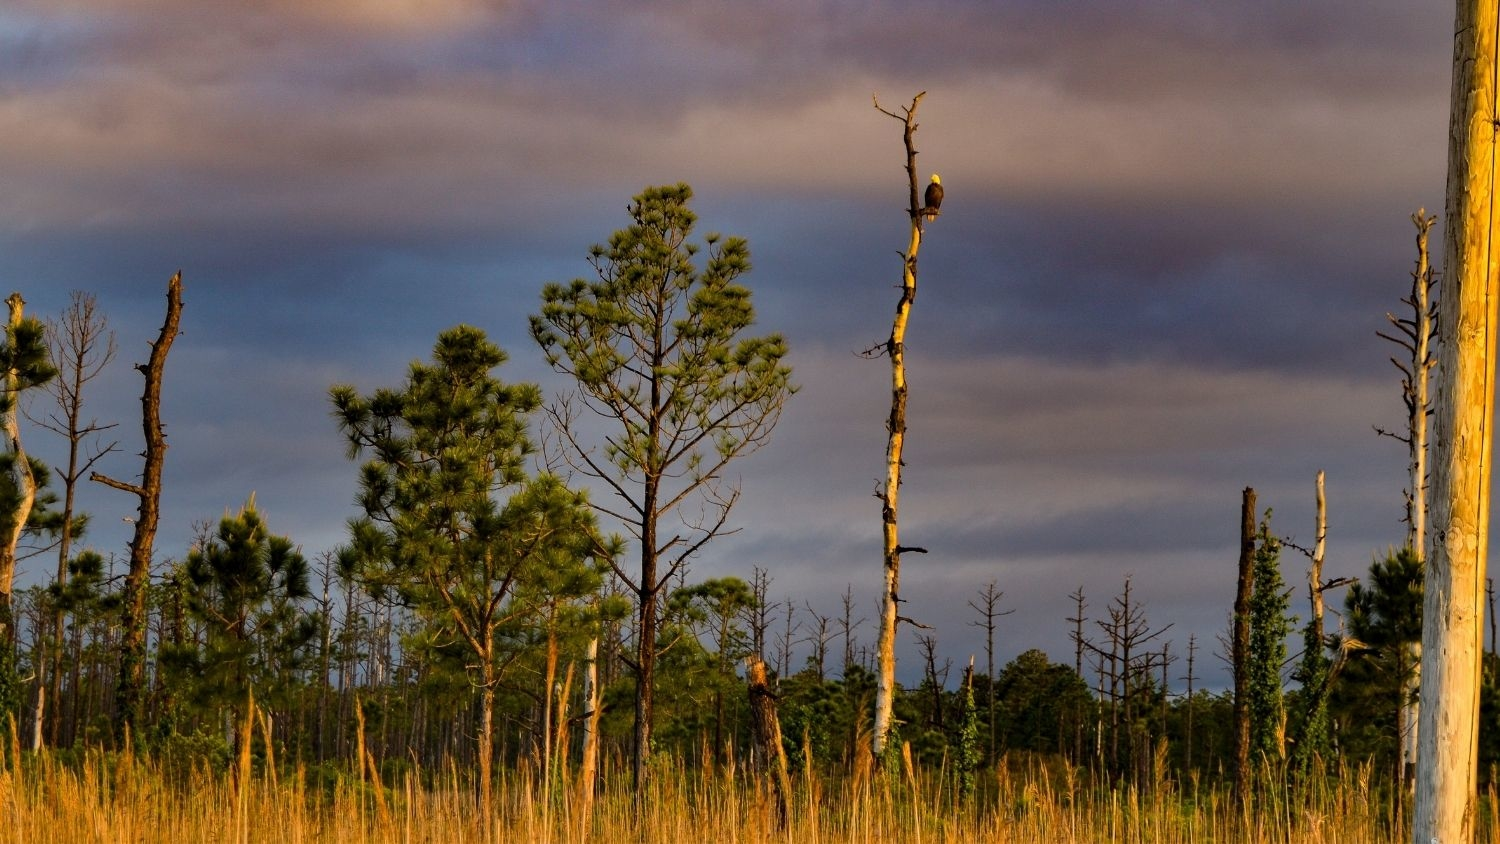 Ghost forest on N.C. coast. - Study Finds Spreading Ghost Forest on N.C. Coast May Contribute to Climate Change - Forestry and Environmental Resources NC State University